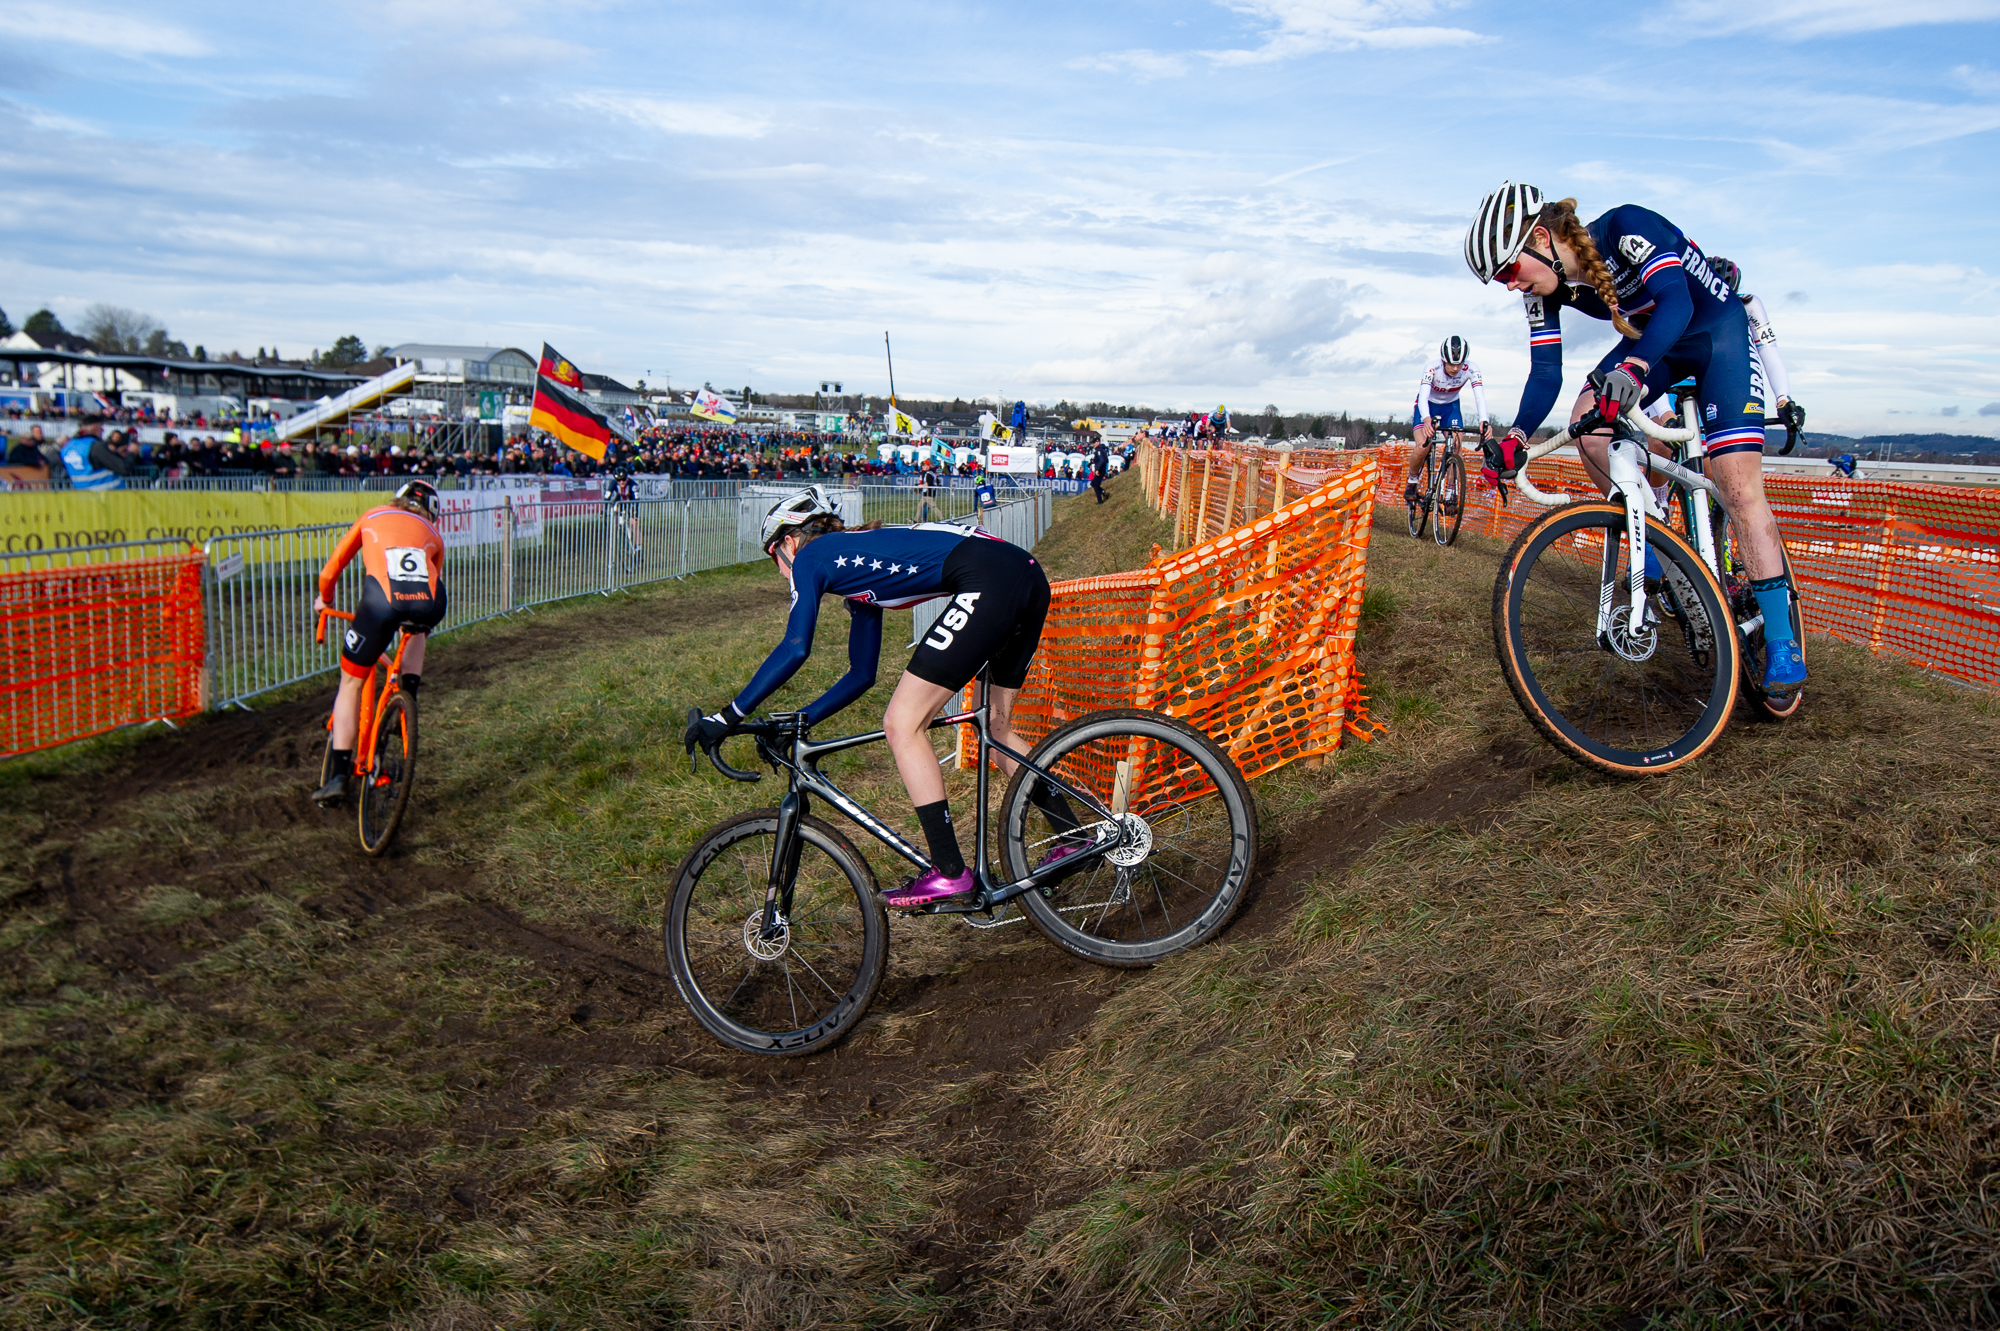 Madigan Munro drops in at the UCI Cyclocross World Championships